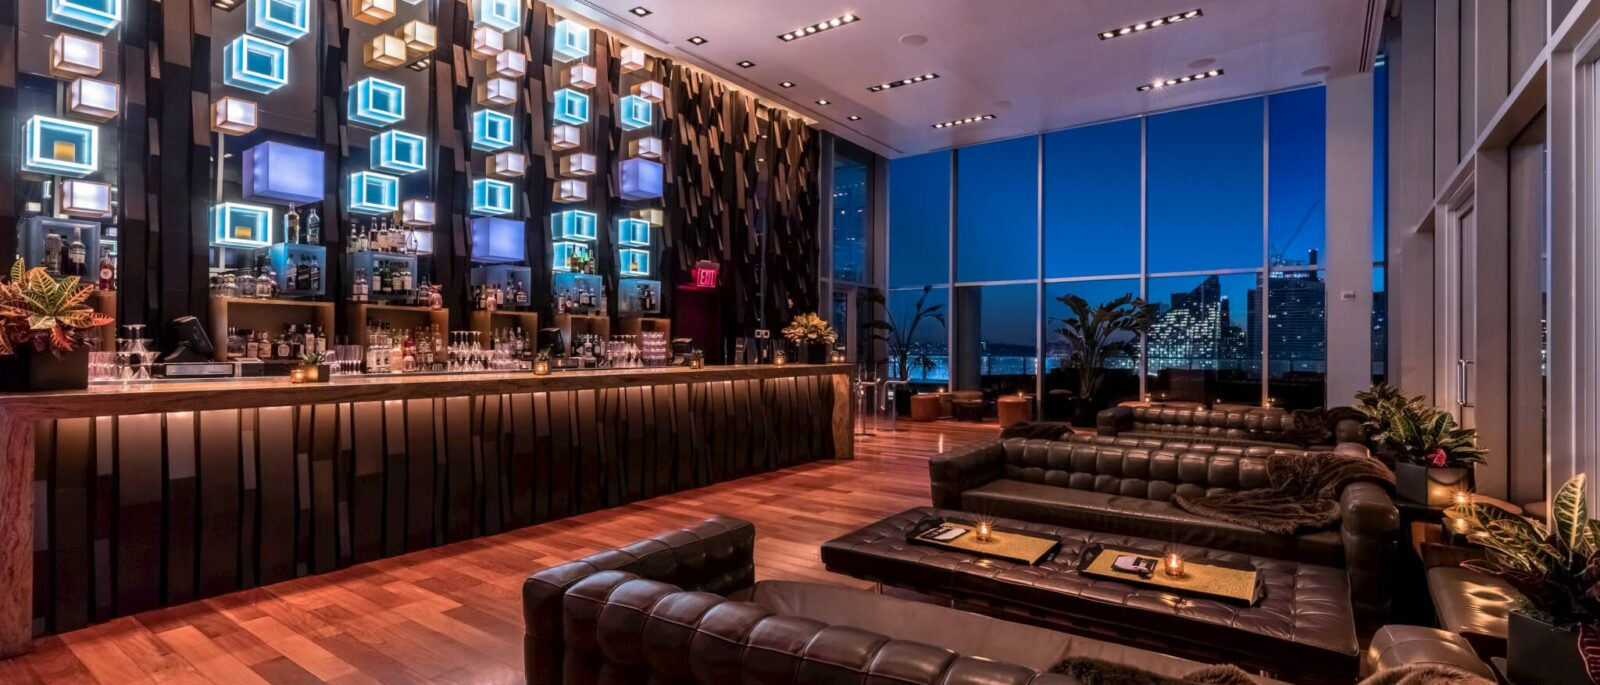 Press Lounge interior at night, showing bar and couches.